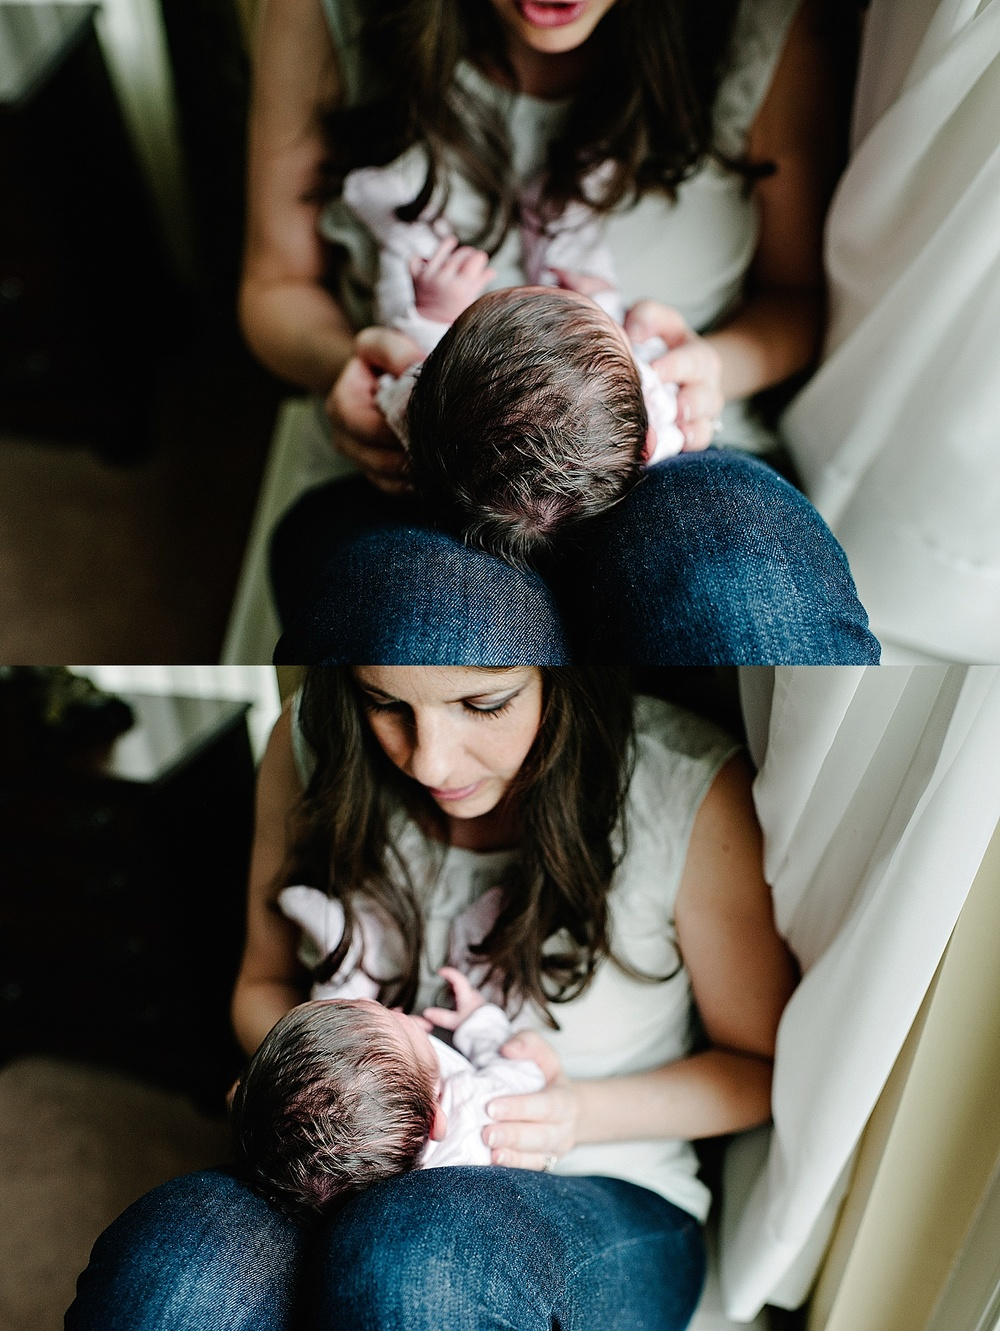 akron-ohio-newborn-family-photographer-cleveland-canton-lauren-grayson-photography